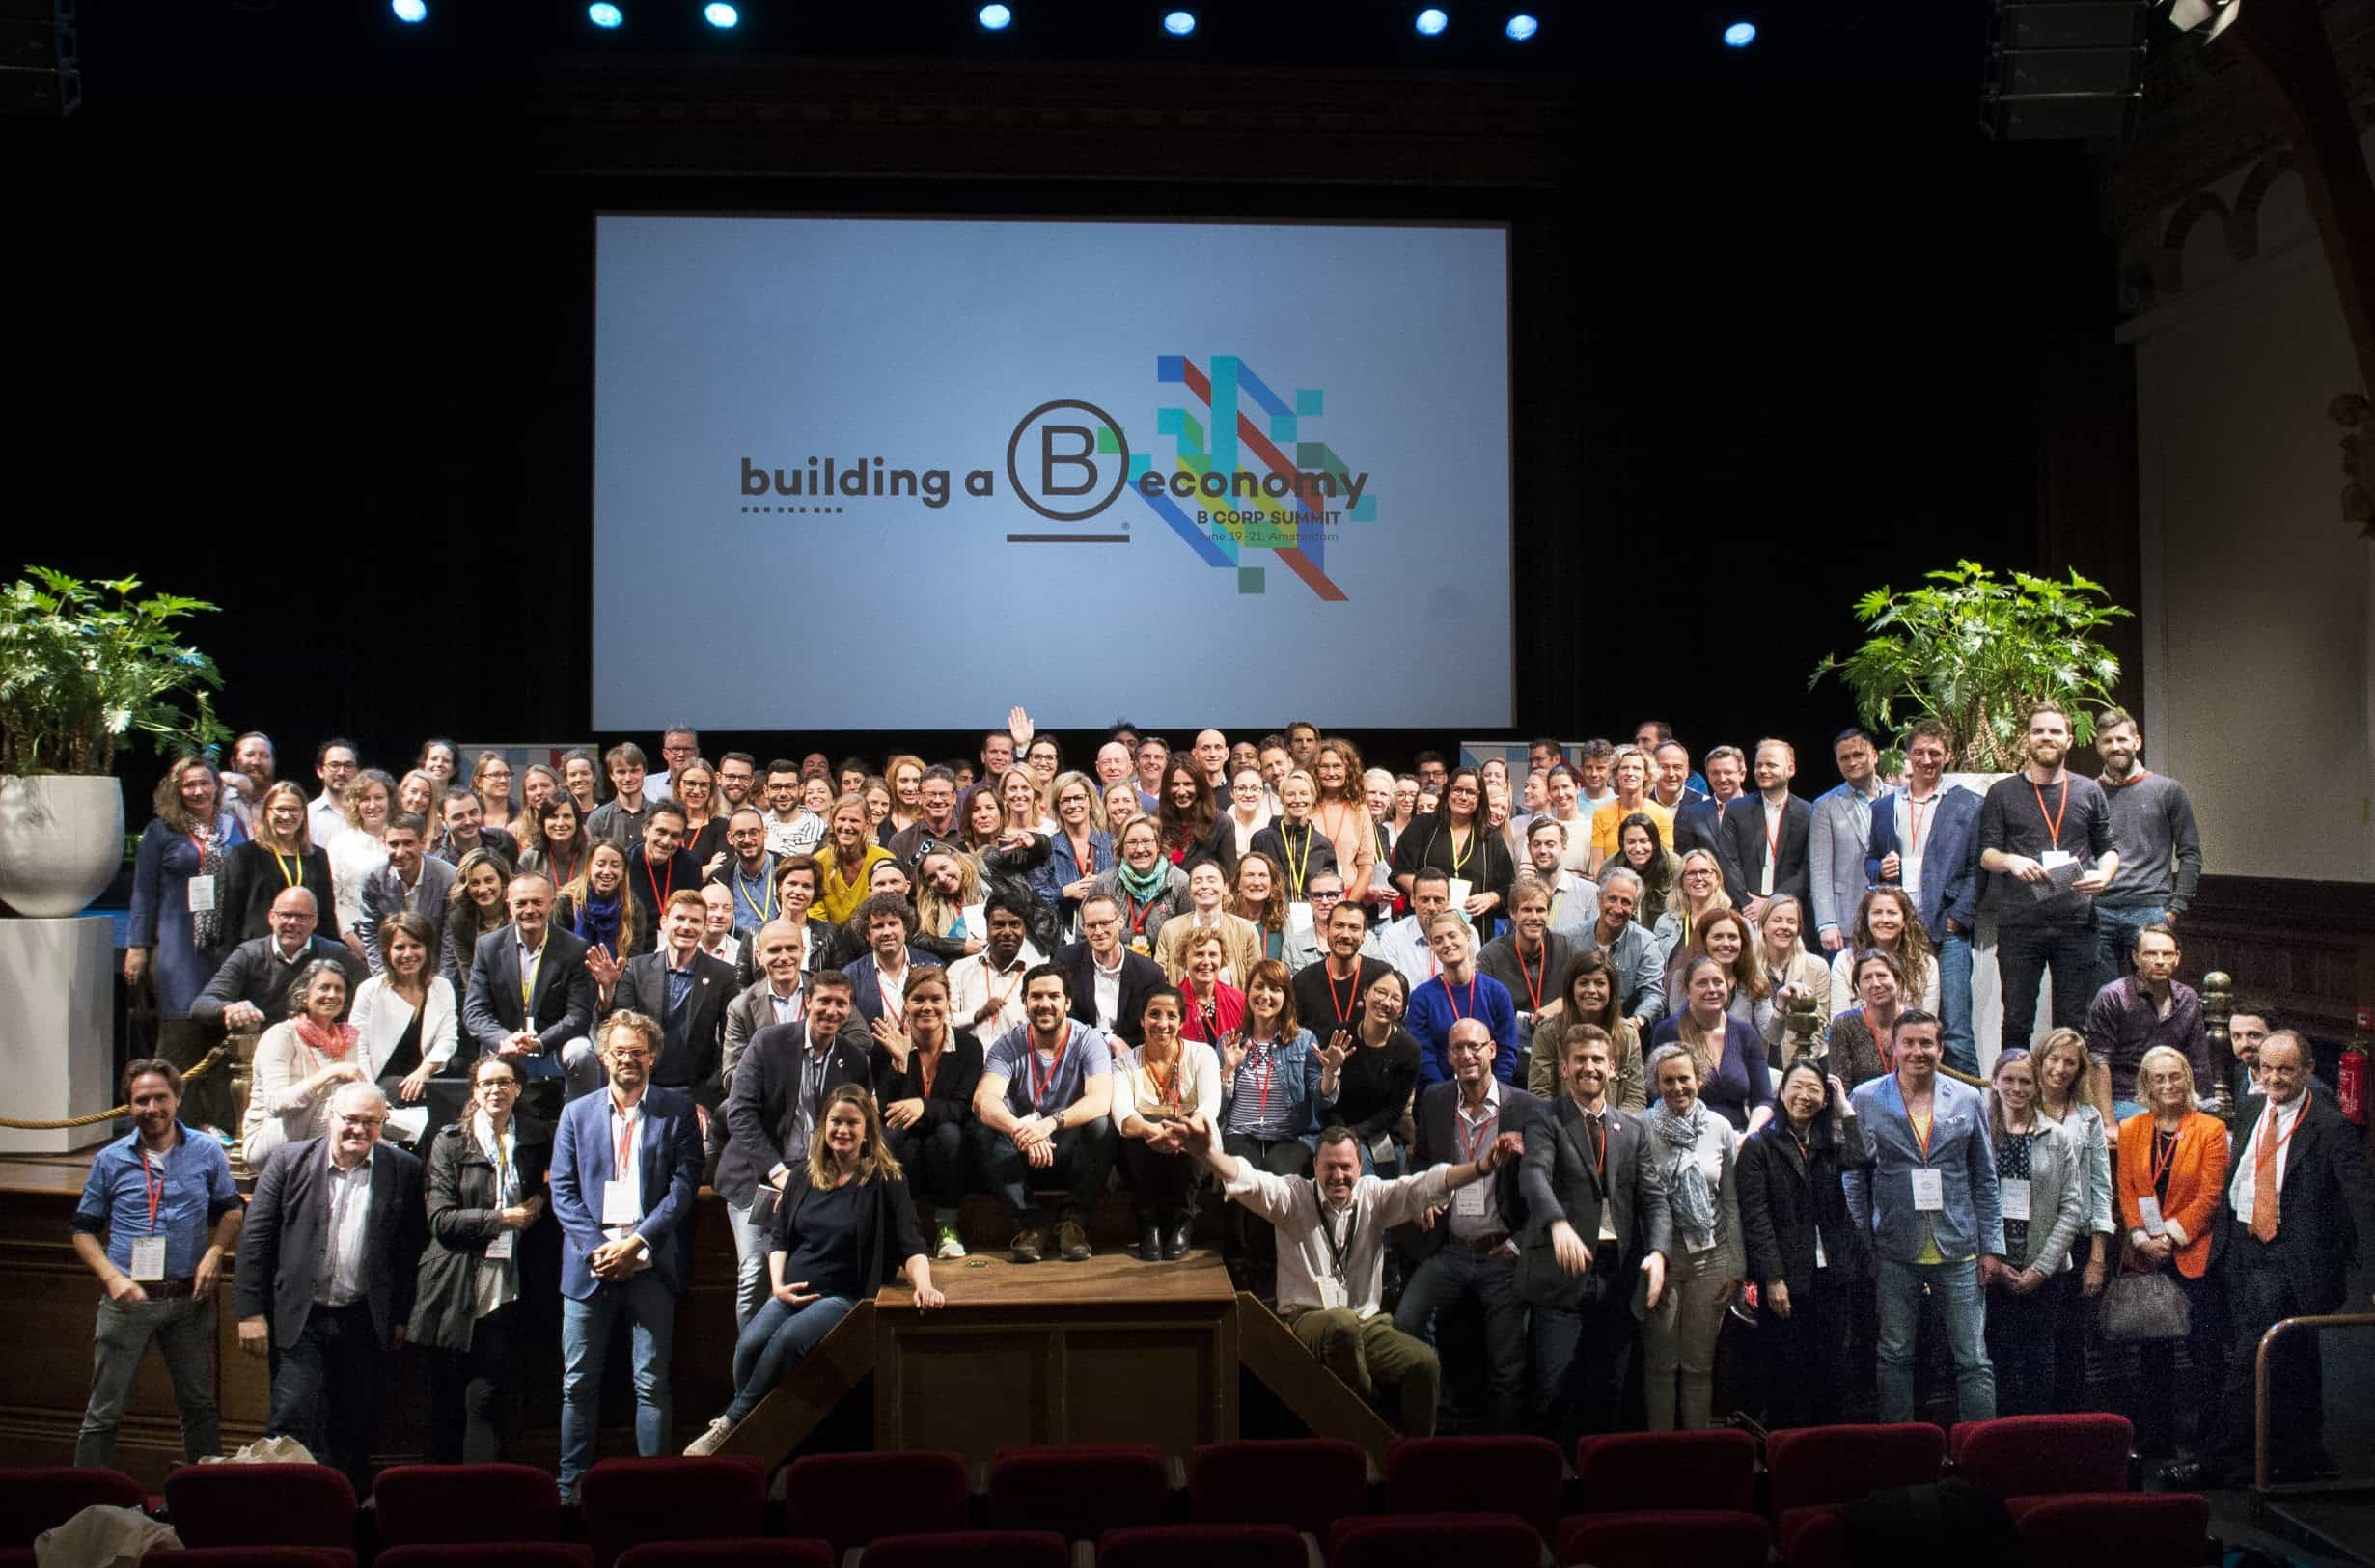 Group shot from the recent 2019 B Summit in Amsterdam